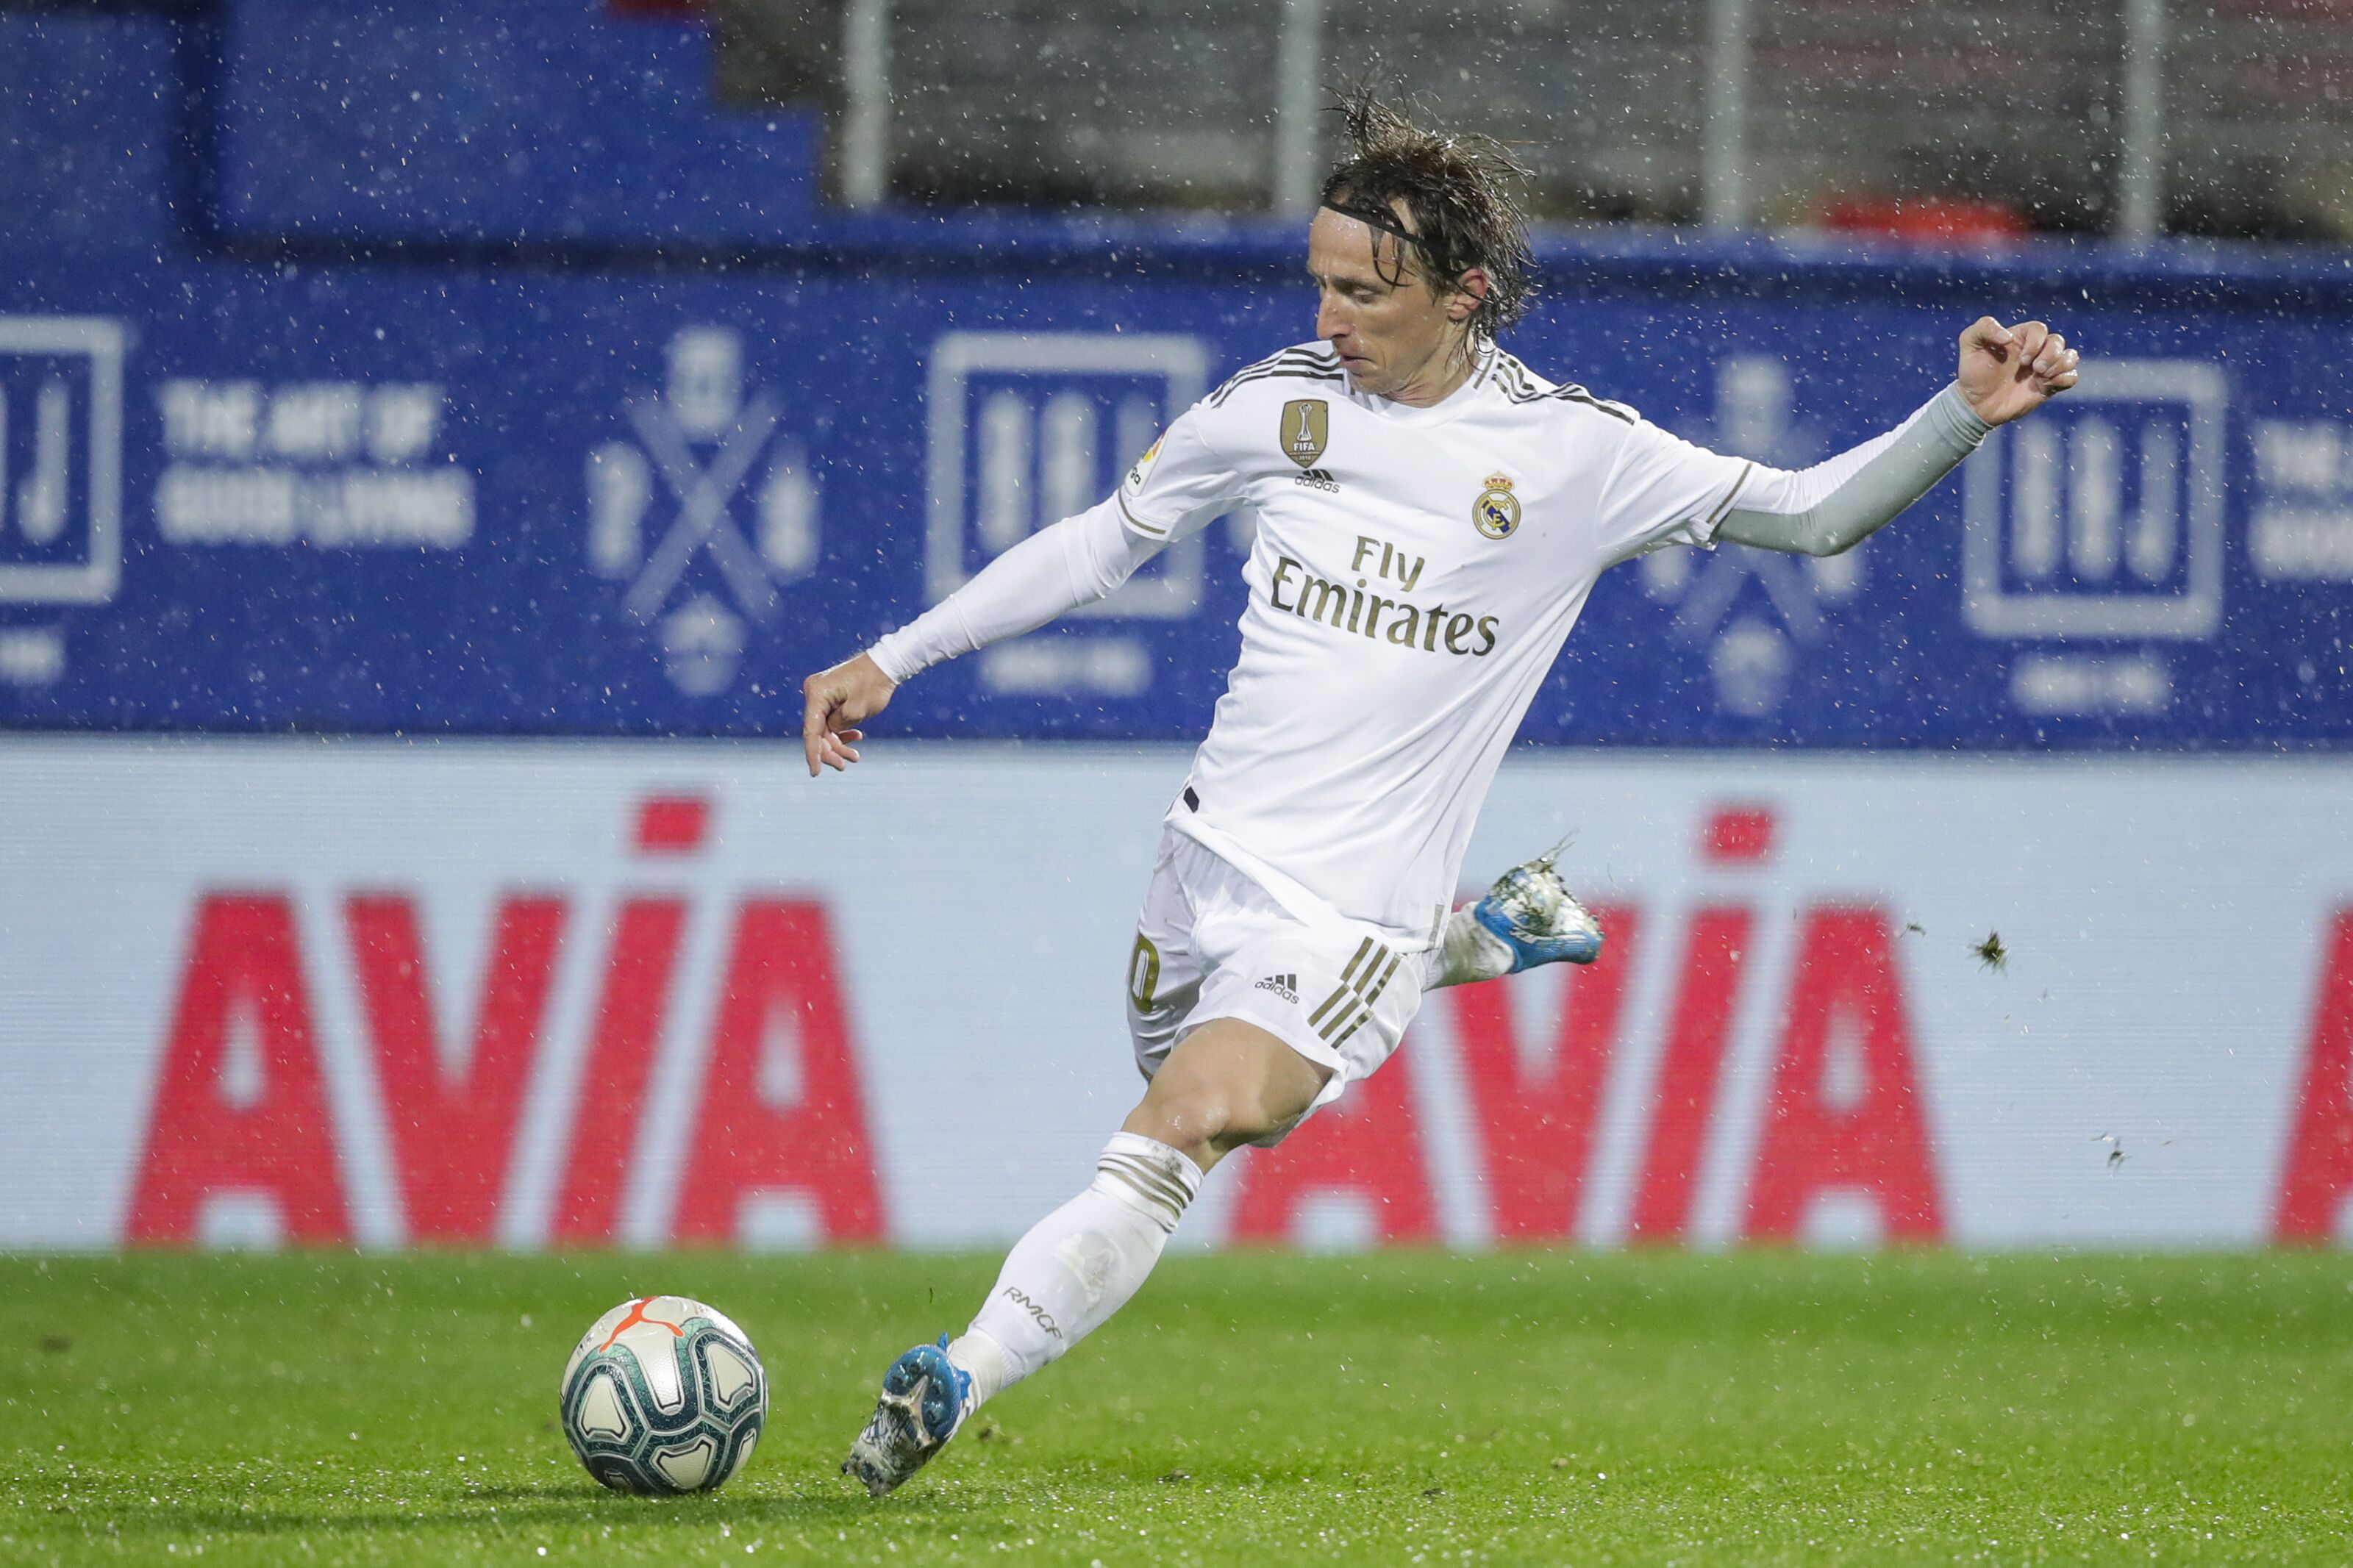 Real Madrid: Luka Modric, Isco are starting to play well again